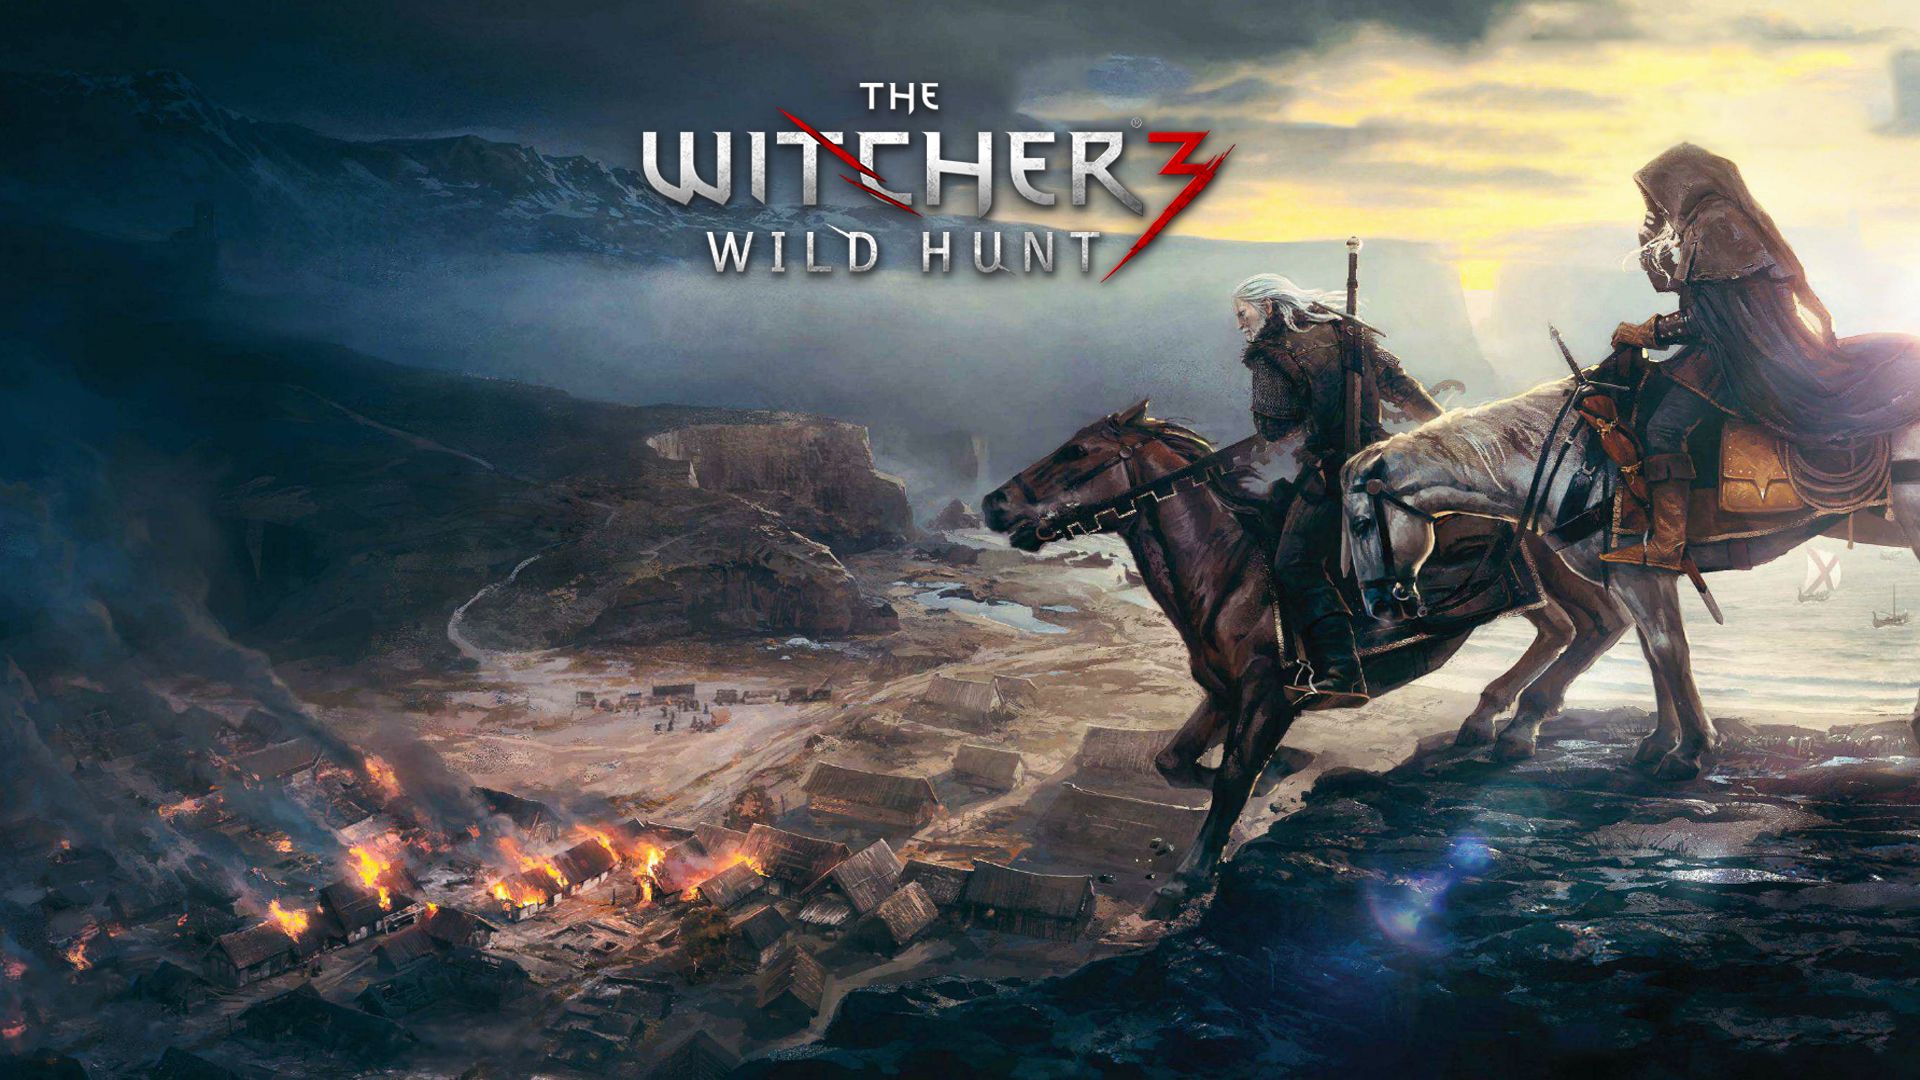 The Witcher 3 Wild Hunt Wallpaper 1080p Wallpaper The Witcher